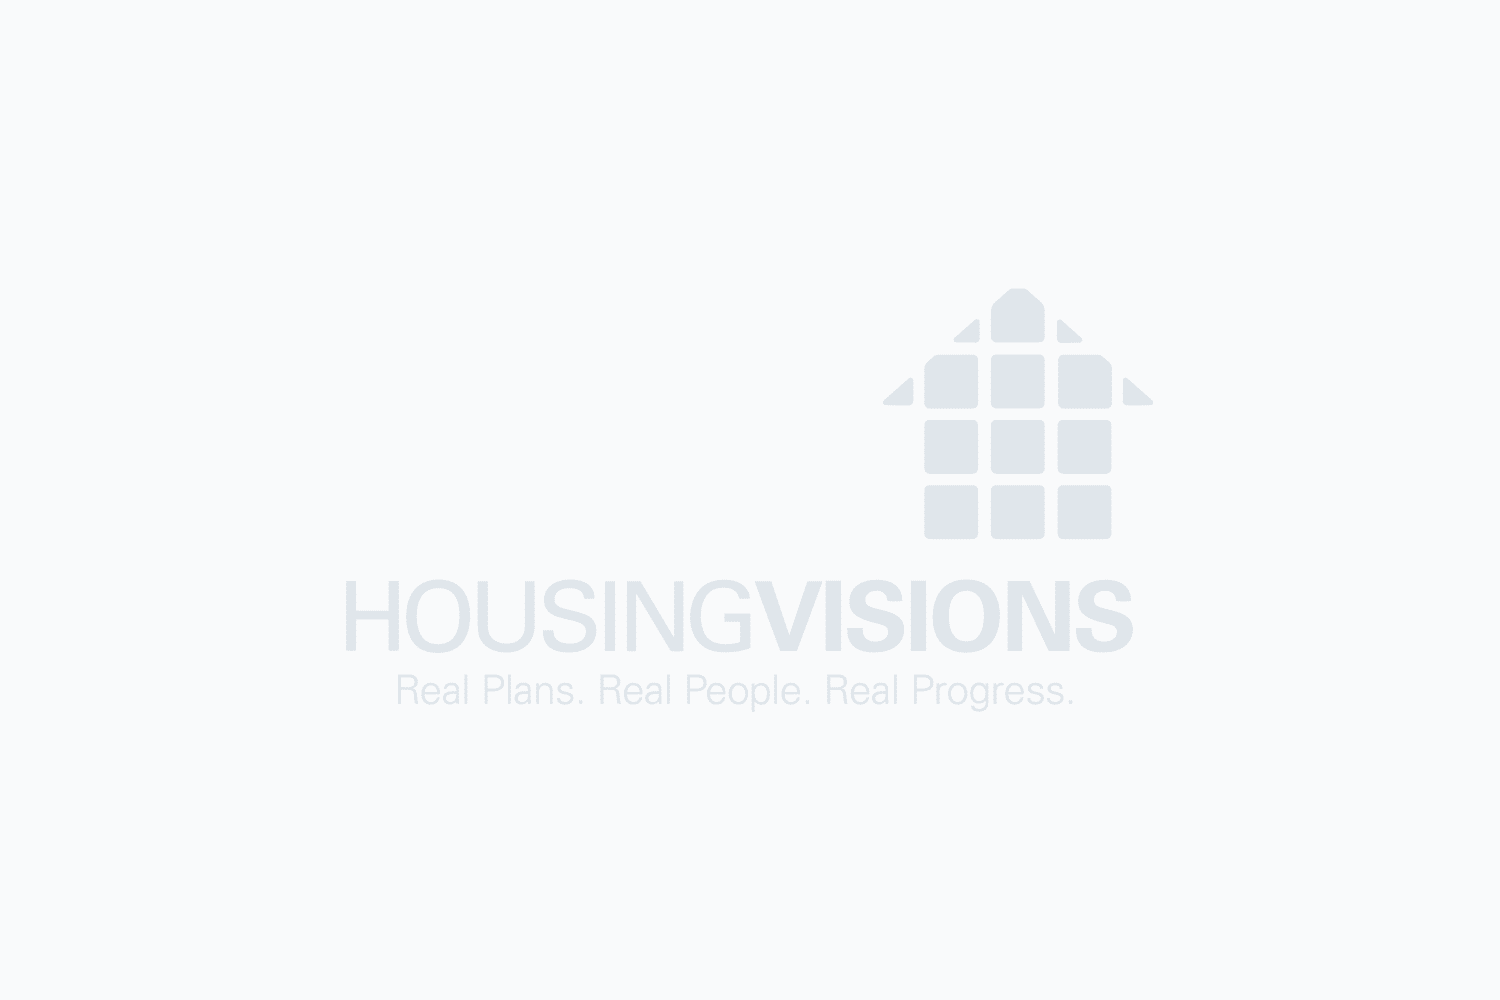 Housing Visions announces award for three  affordable housing projects in Upstate New York